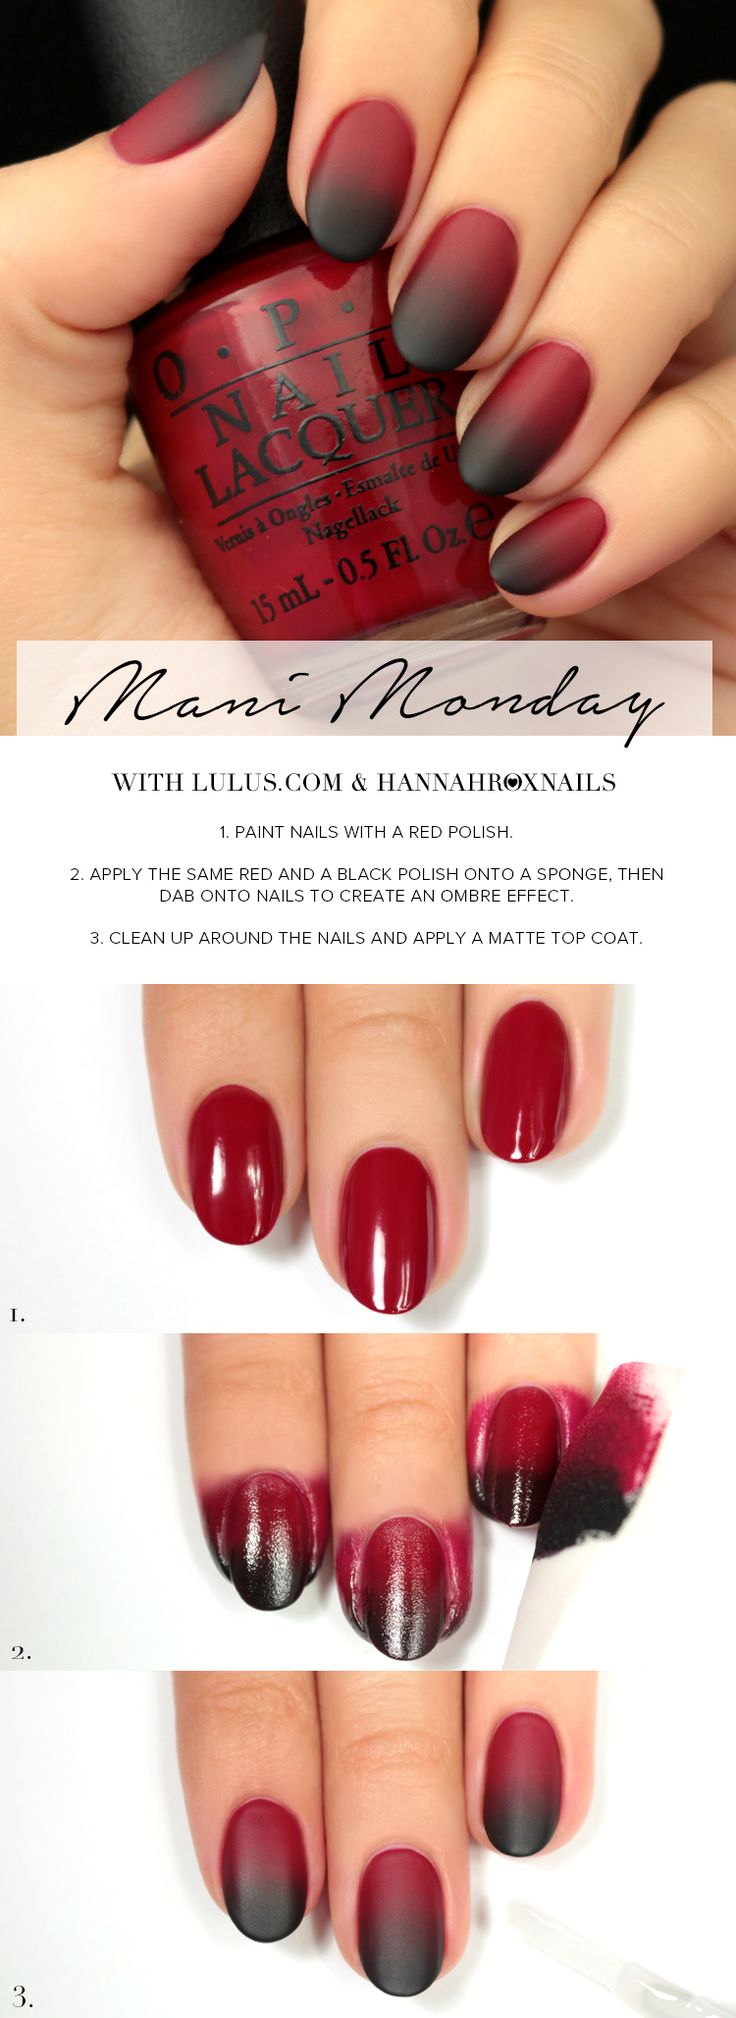 996 best Beauty Nails images on Pinterest | Nail design, Cute nails ...